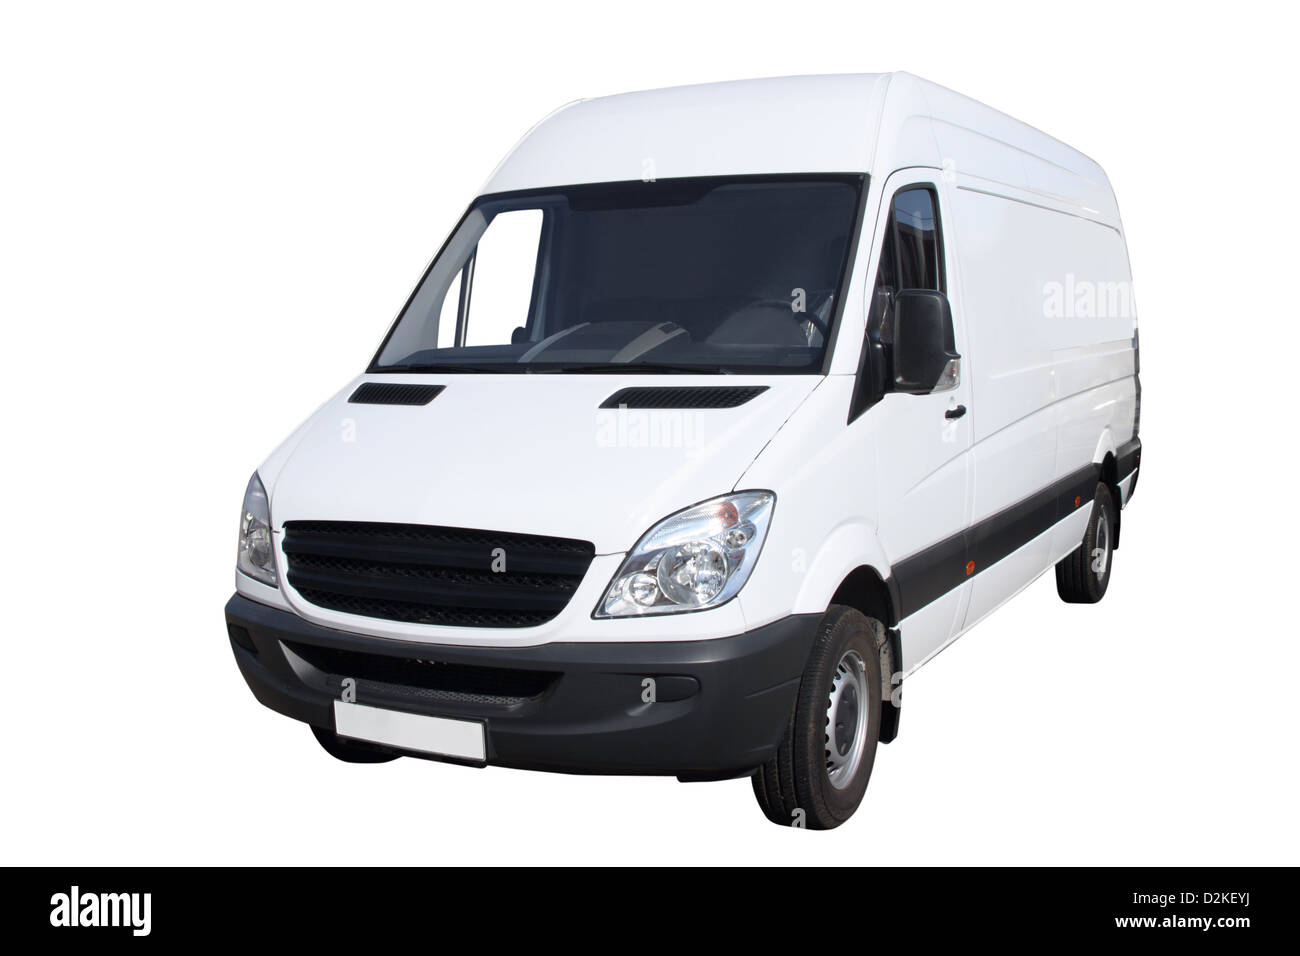 Small compact van separately on a white background - Stock Image